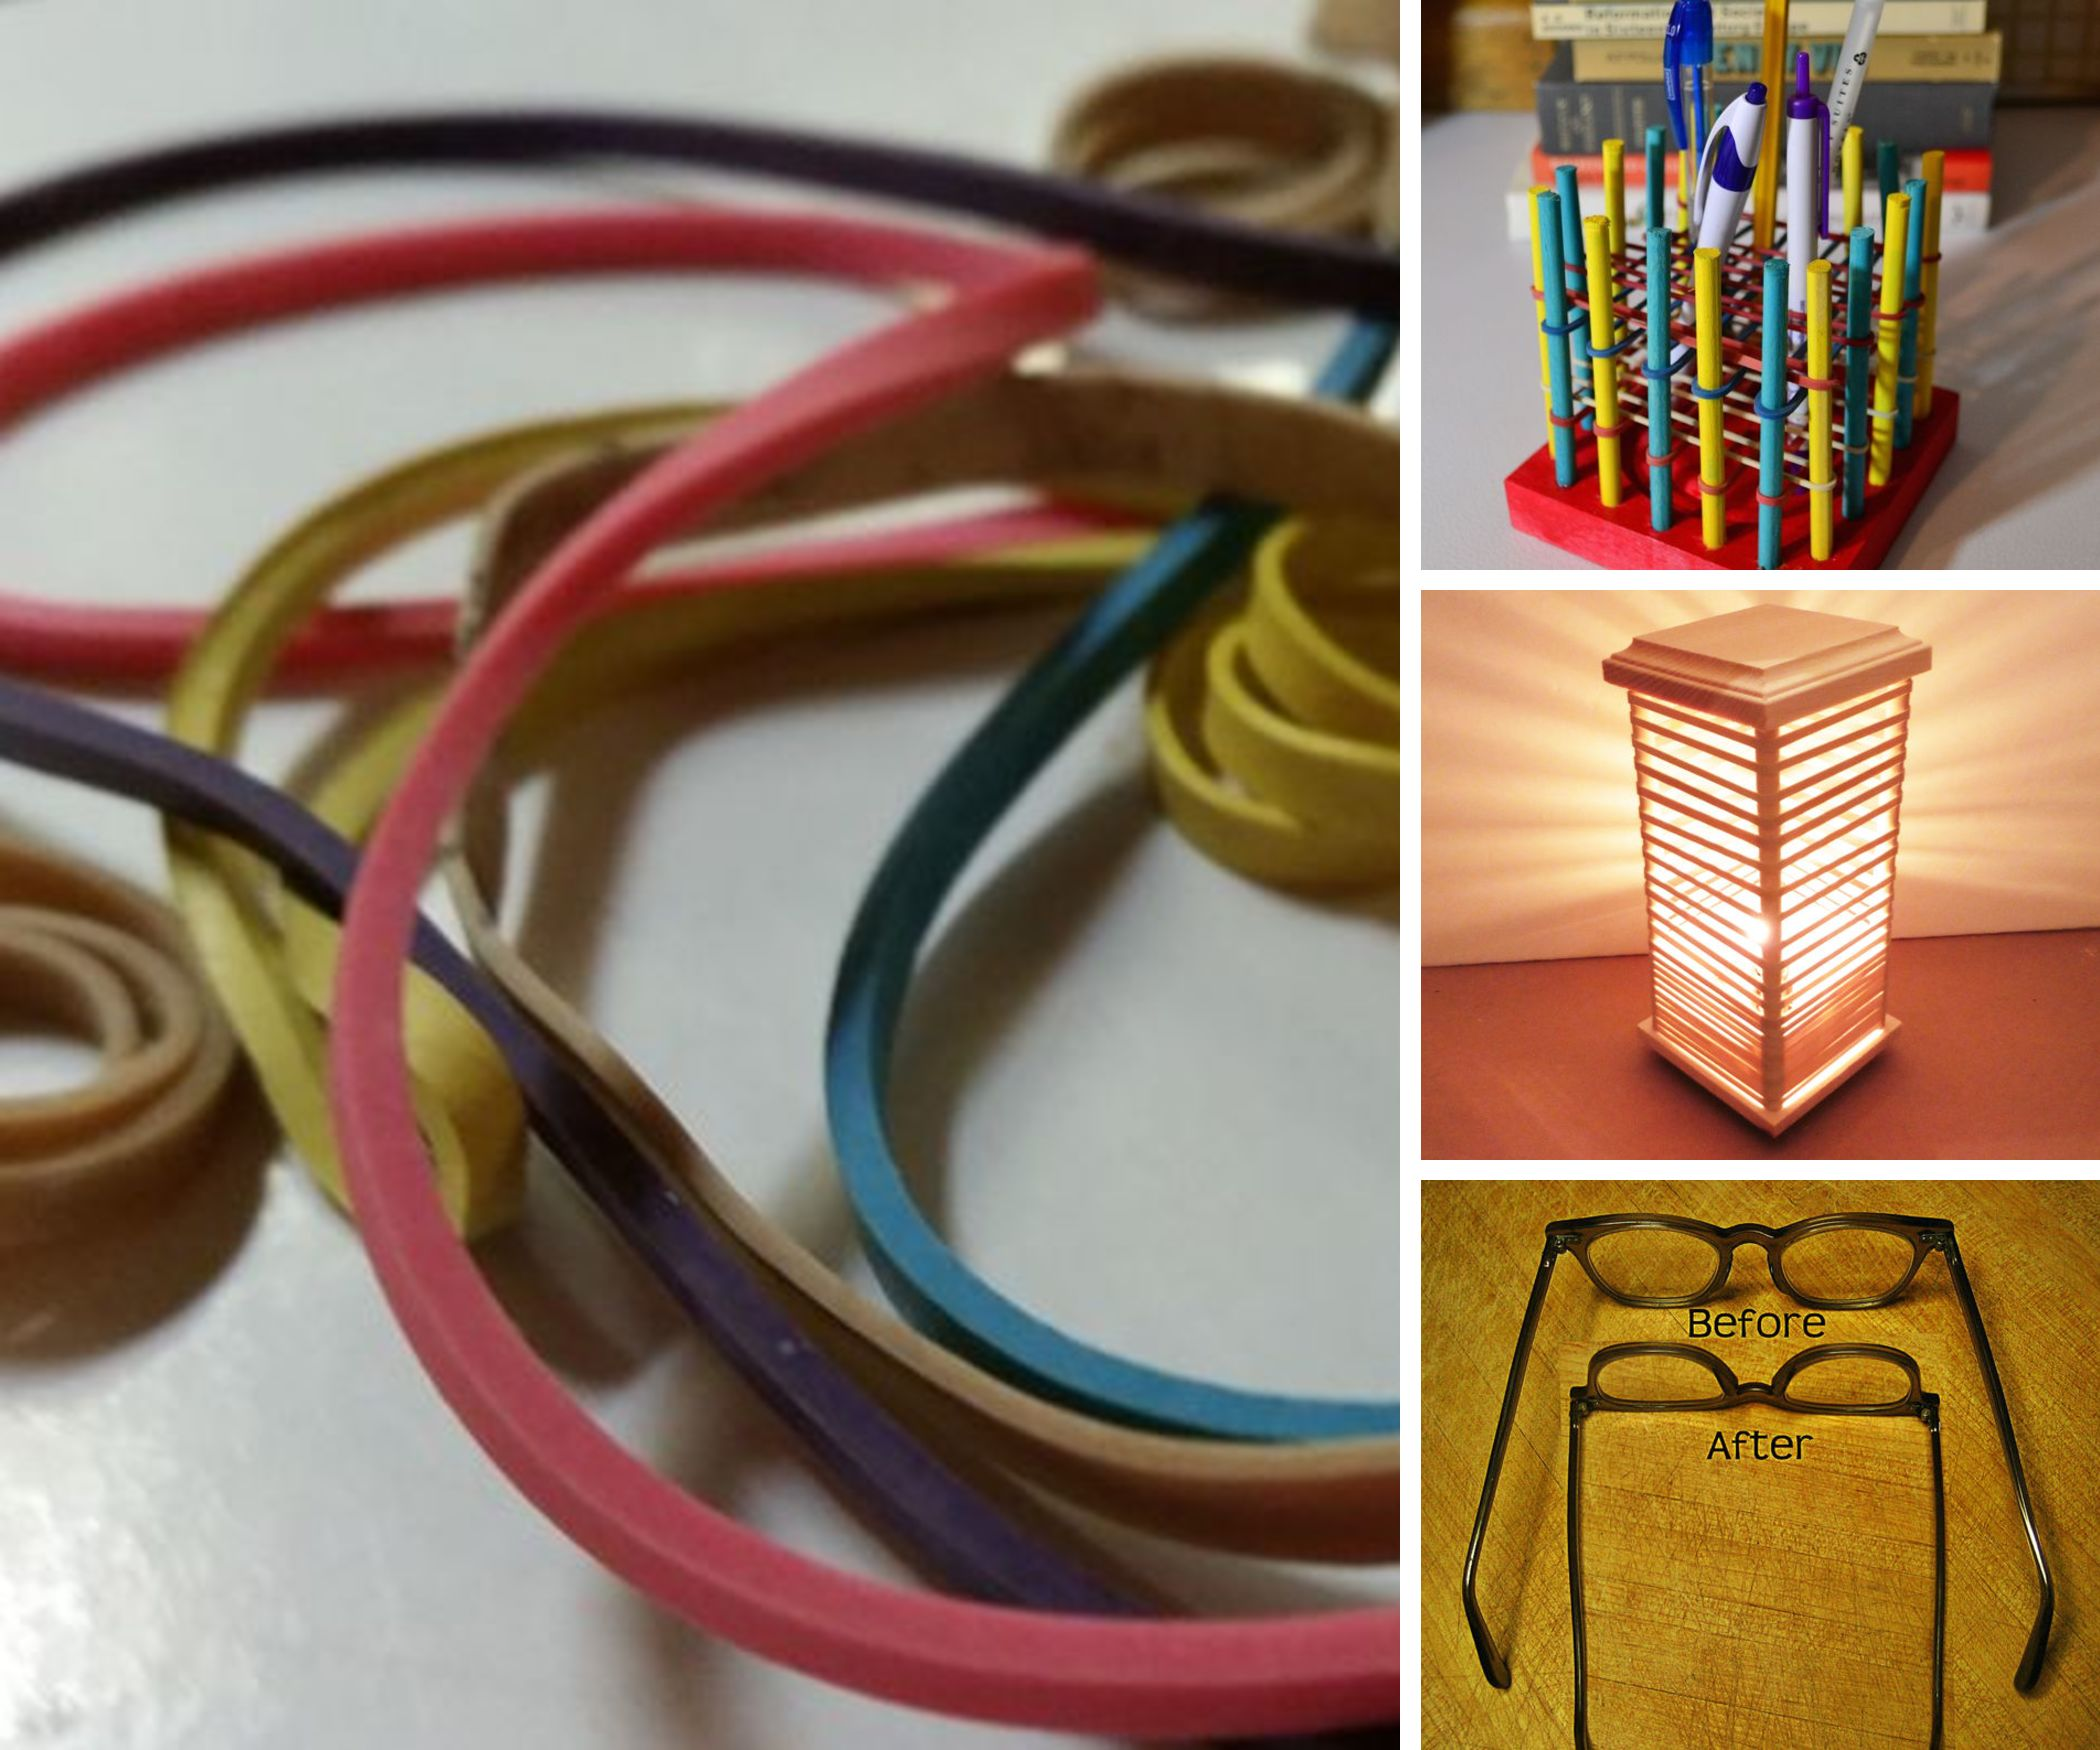 Unusual Uses for Rubber Bands